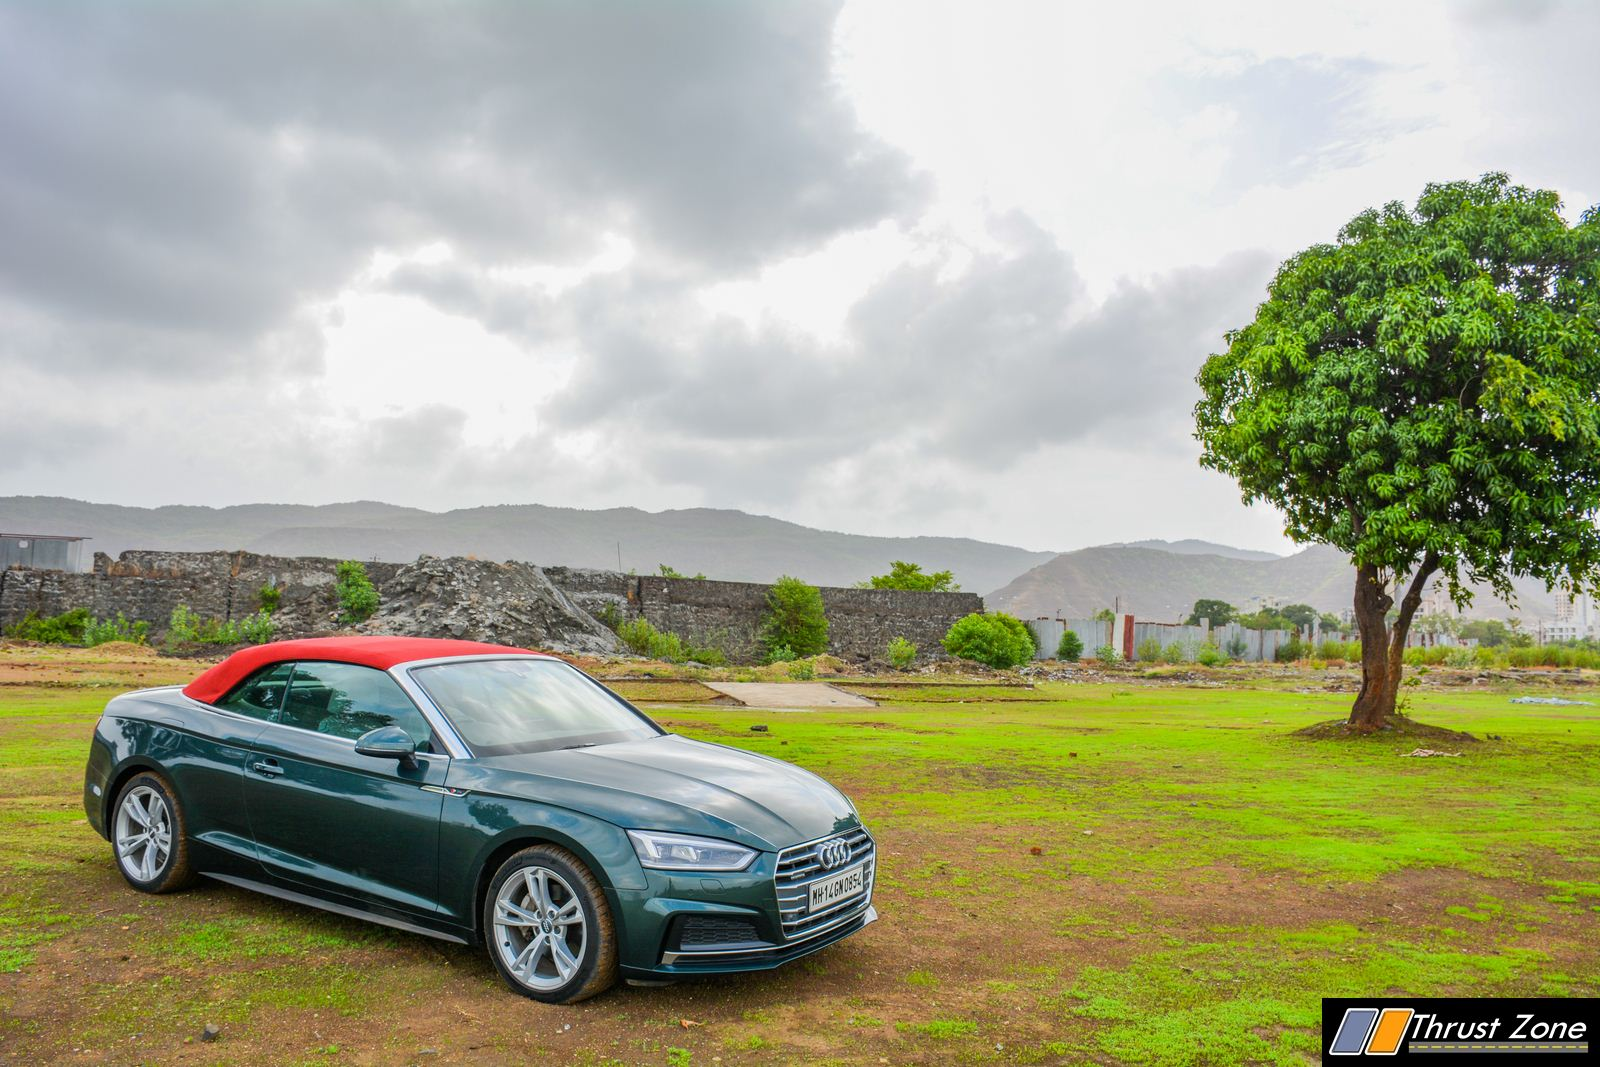 https://www.thrustzone.com/wp-content/uploads/2019/06/2019-Audi-A5-Cabriolet-Convertible-India-Diesel-Review-14.jpg